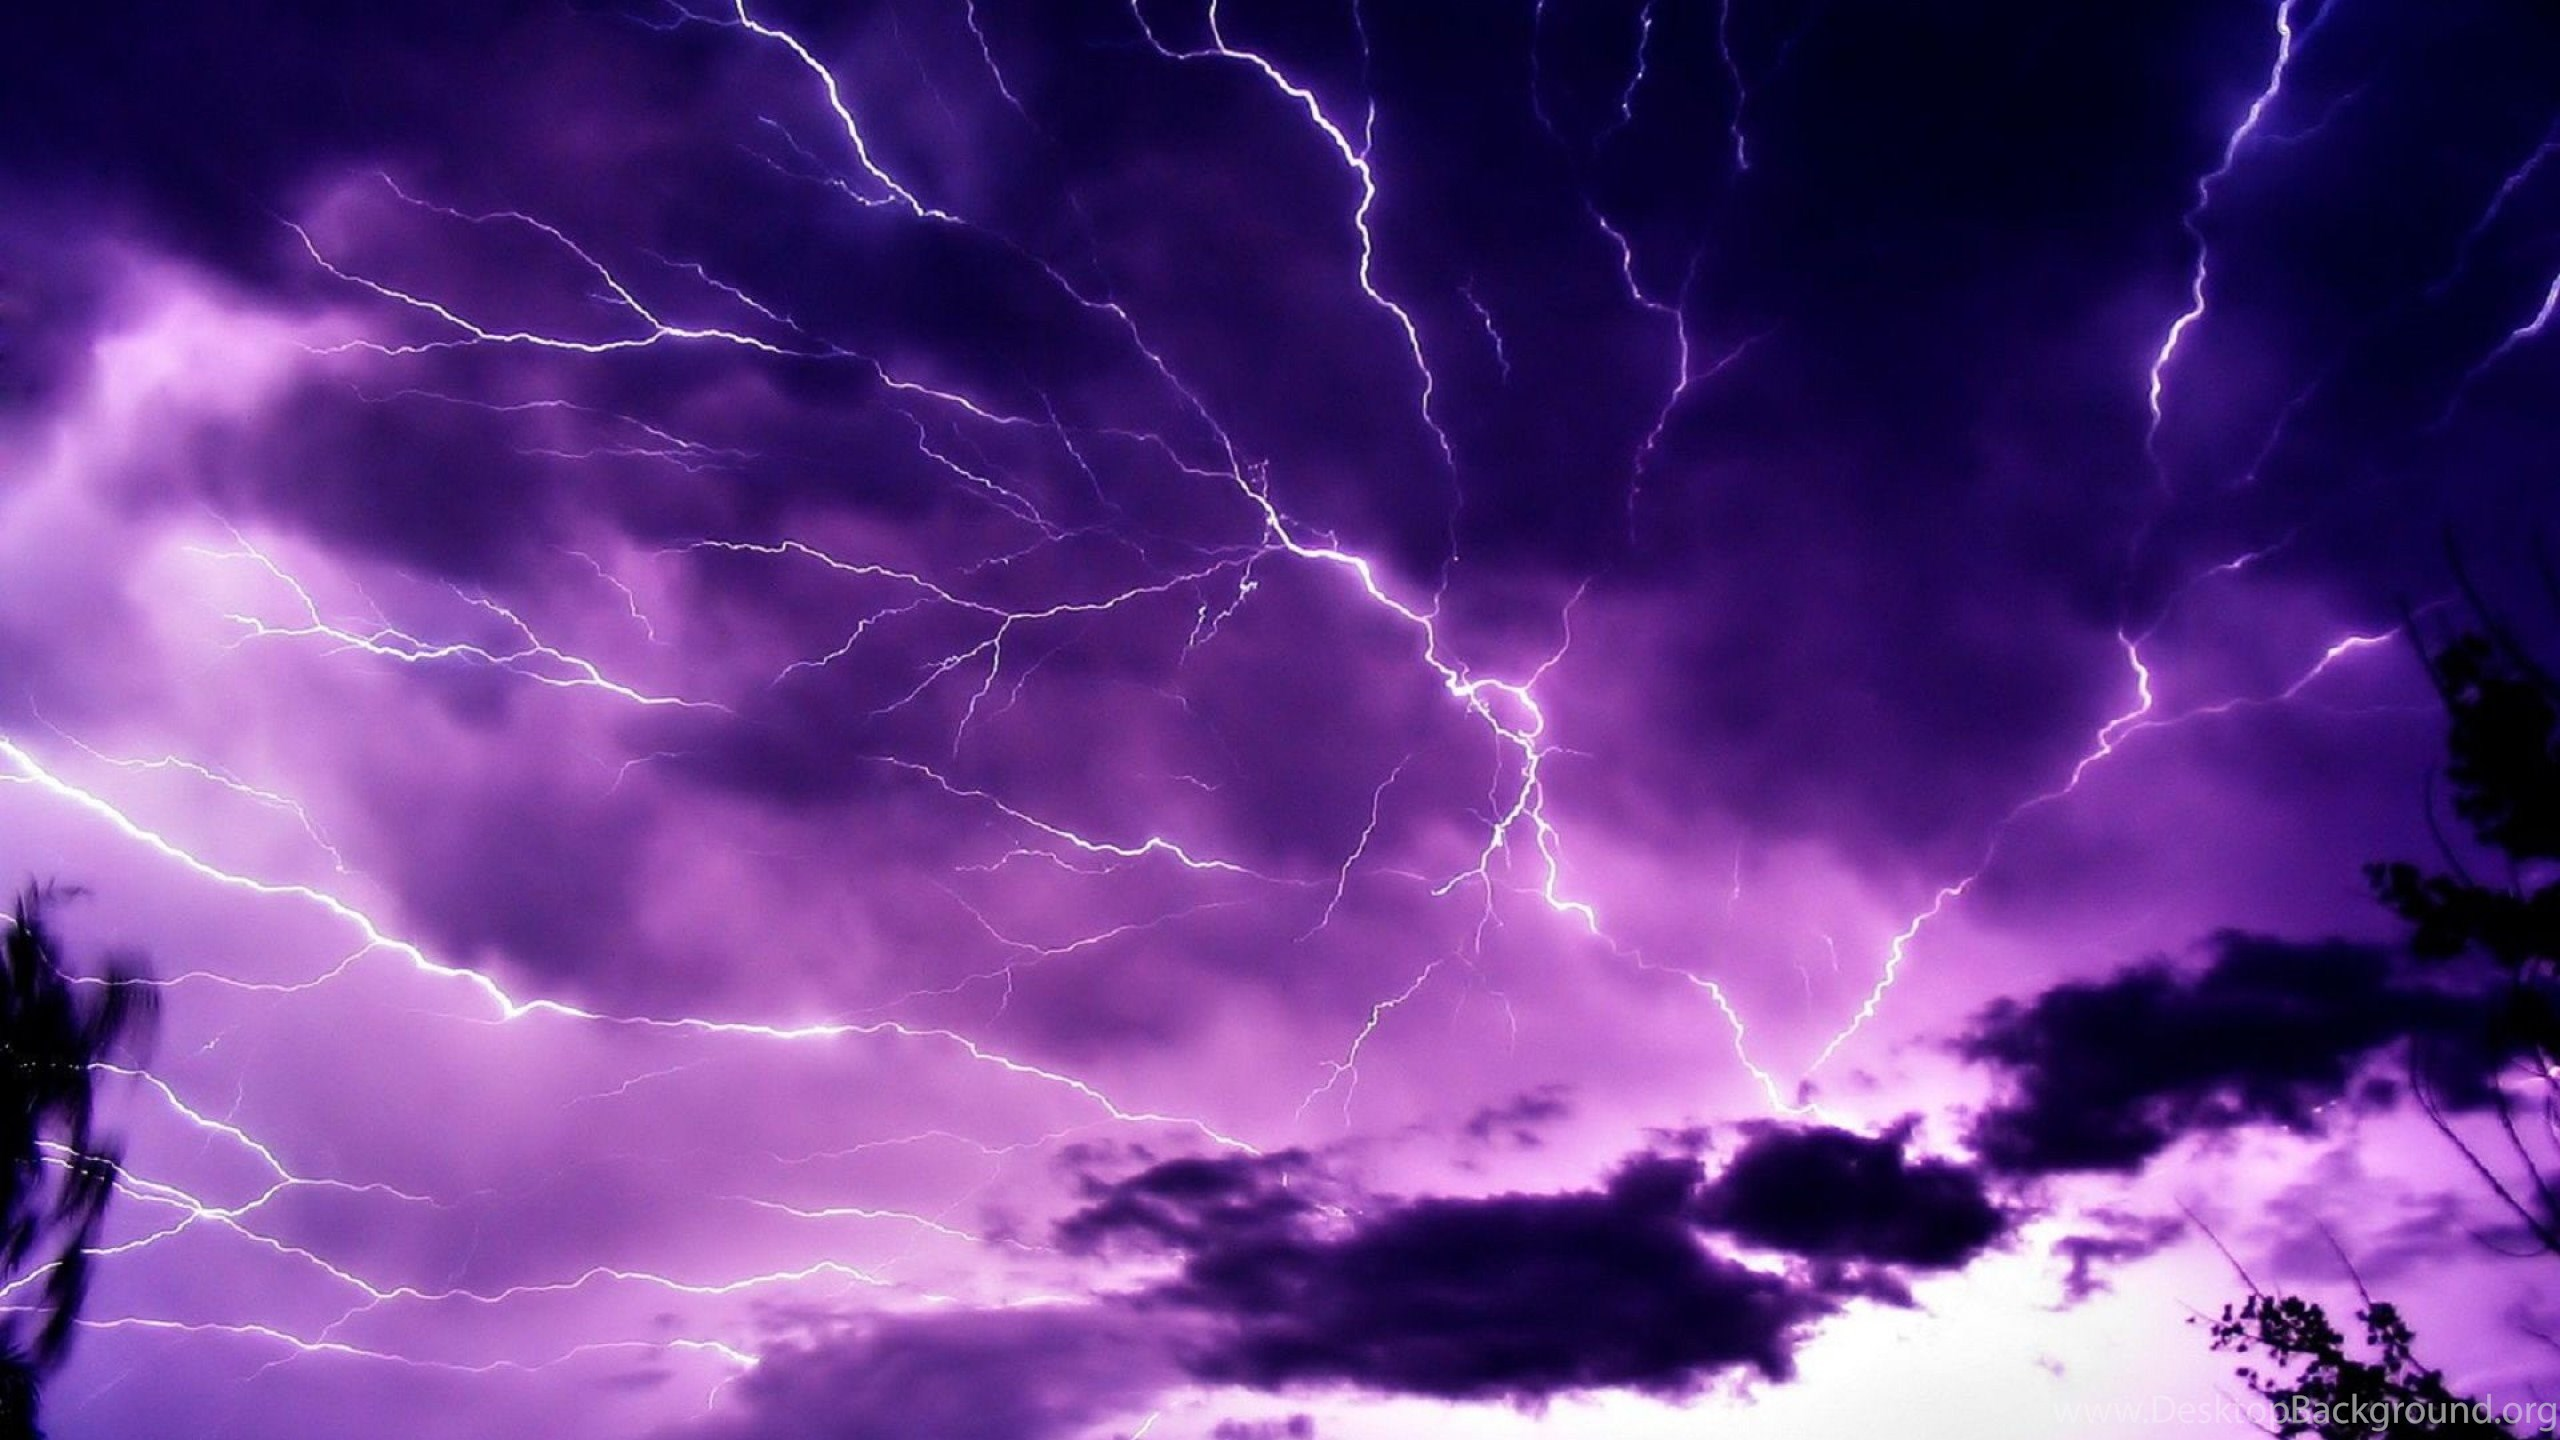 18 lightning storm wallpapers hd :: lightning storm desktop background